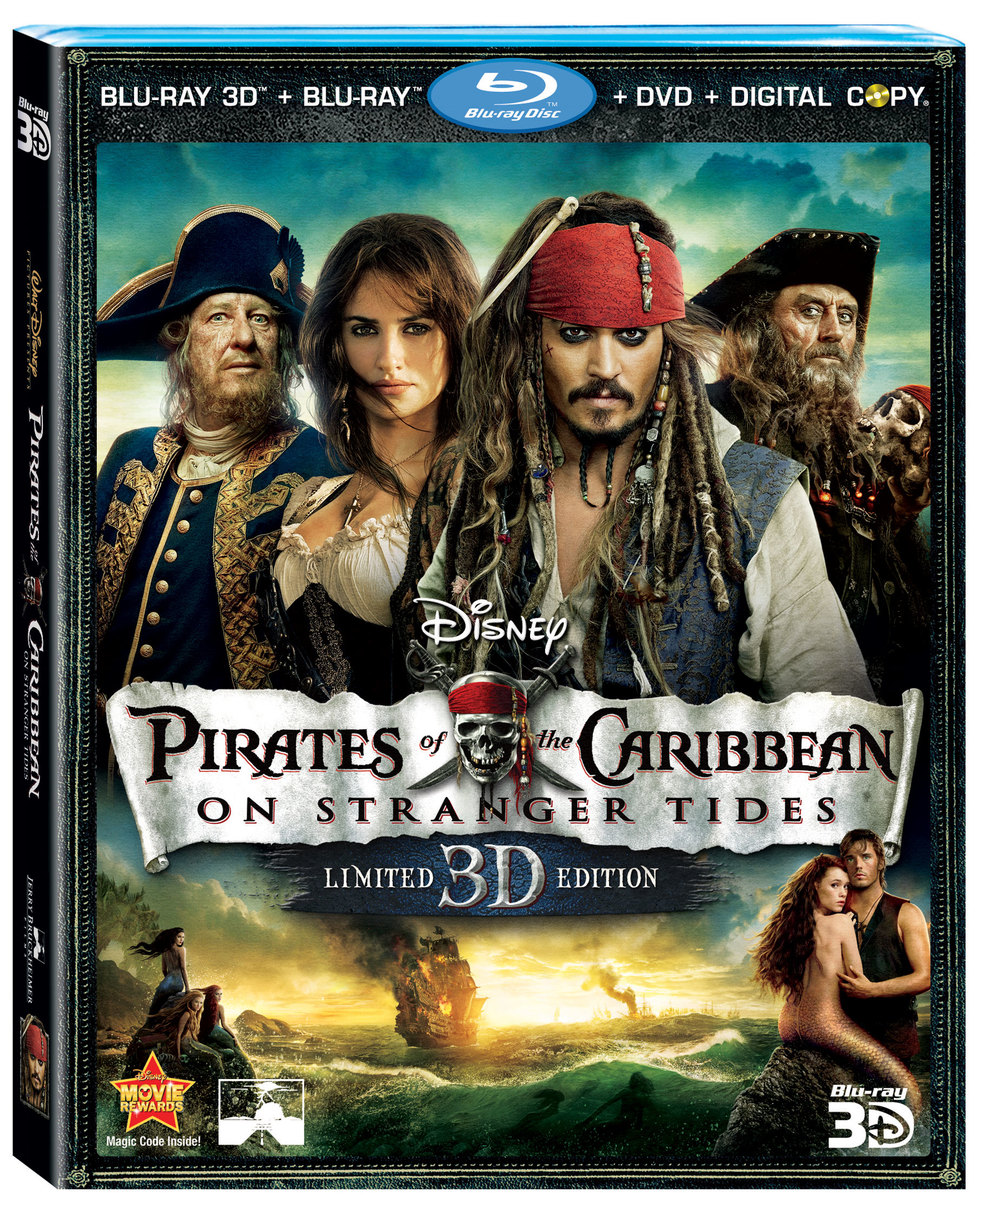 Disney Doppelgangers Pirates Edition: Win A PIRATES OF THE CARIBBEAN 4 Prize Pack